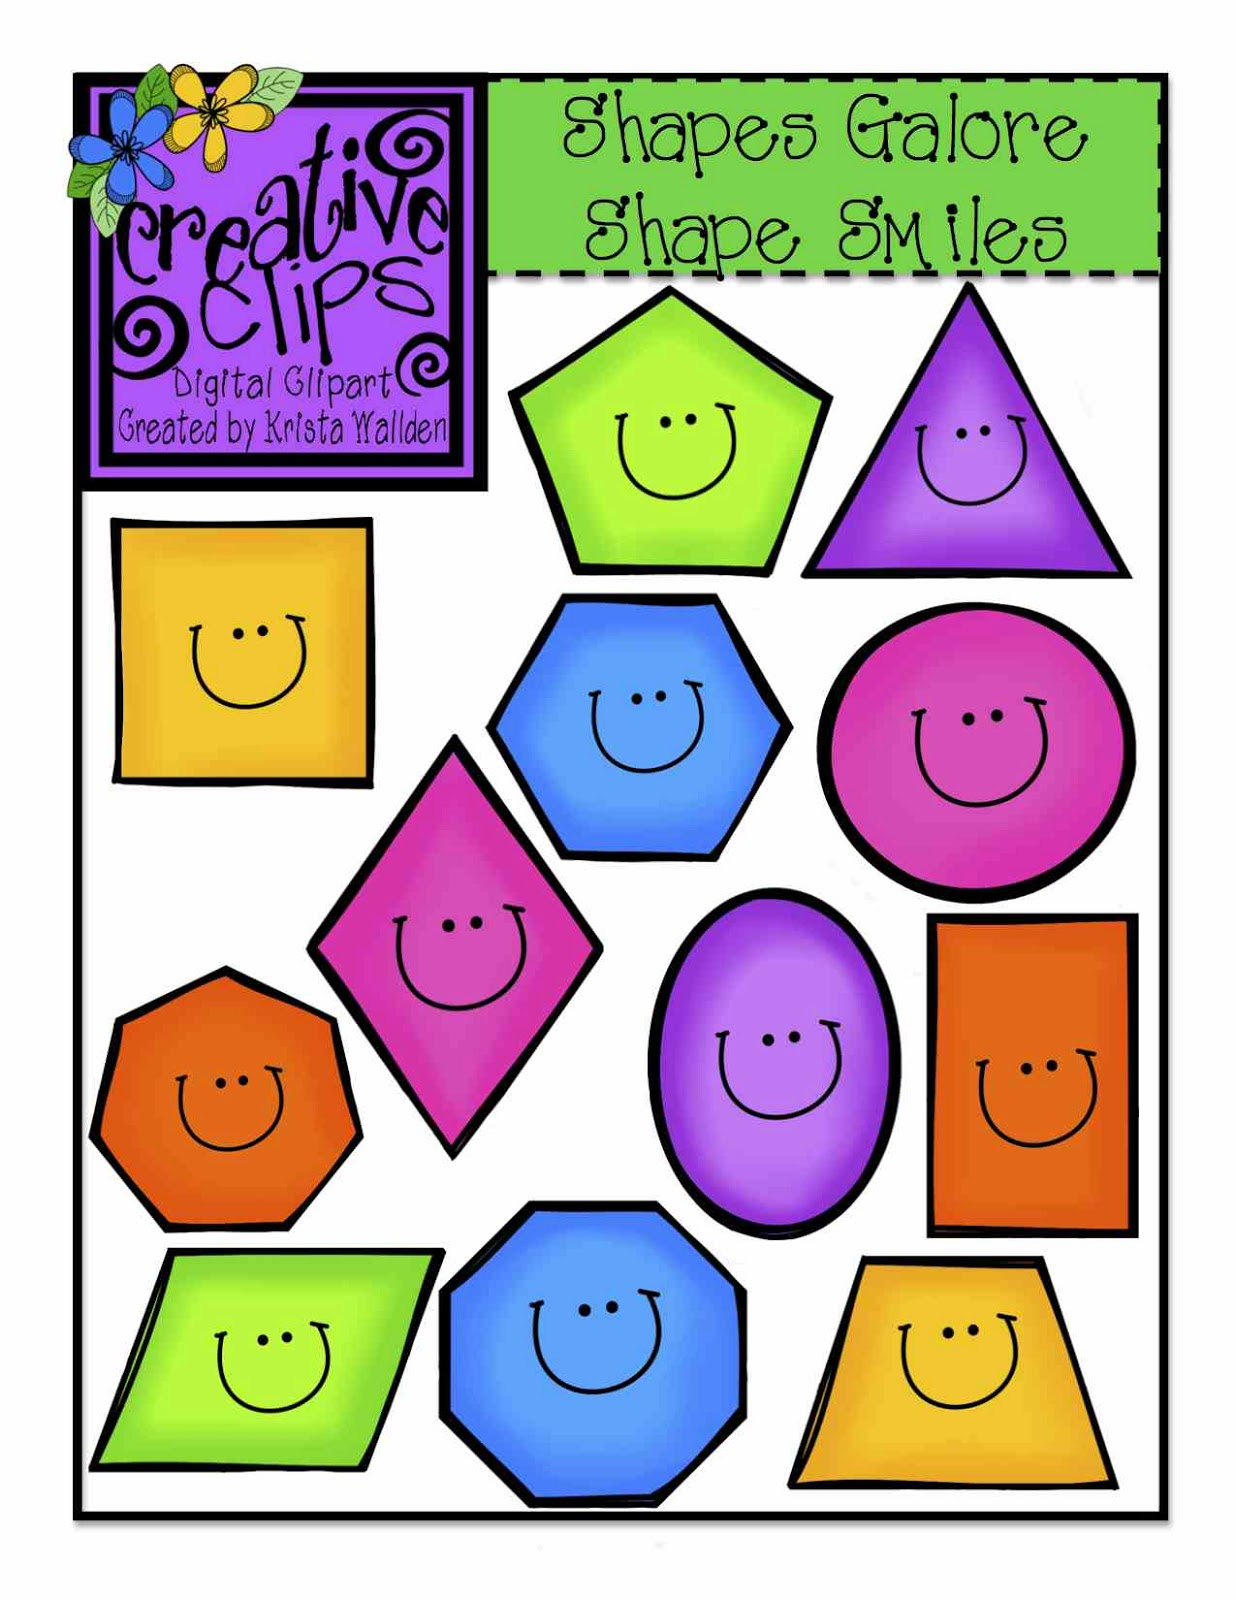 Cute shapes clipart image royalty free stock 58+ Free Clip Art Shapes | ClipartLook image royalty free stock